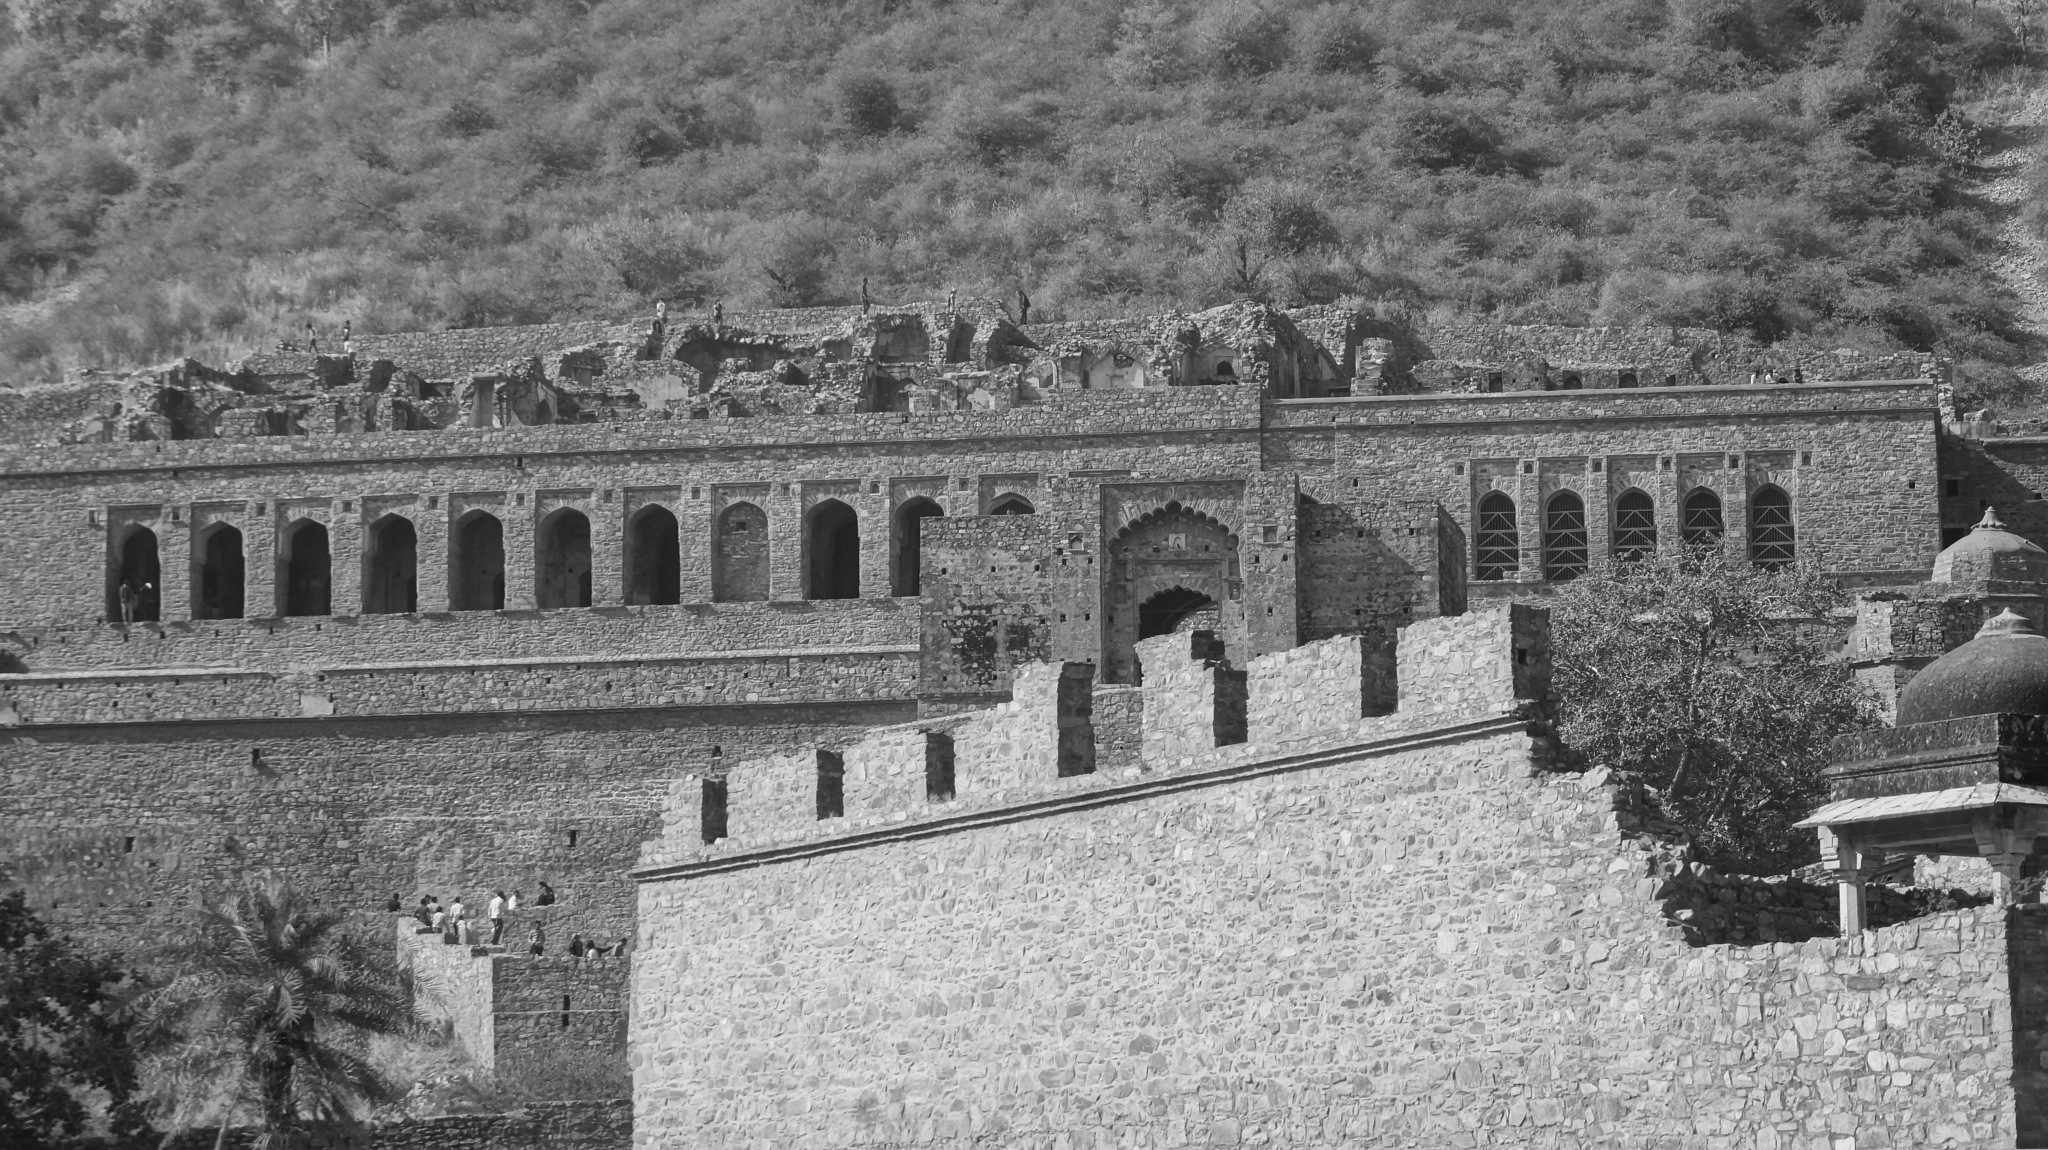 Ruins of Bhangarh - One of India's many haunted place by Shirin Kujur